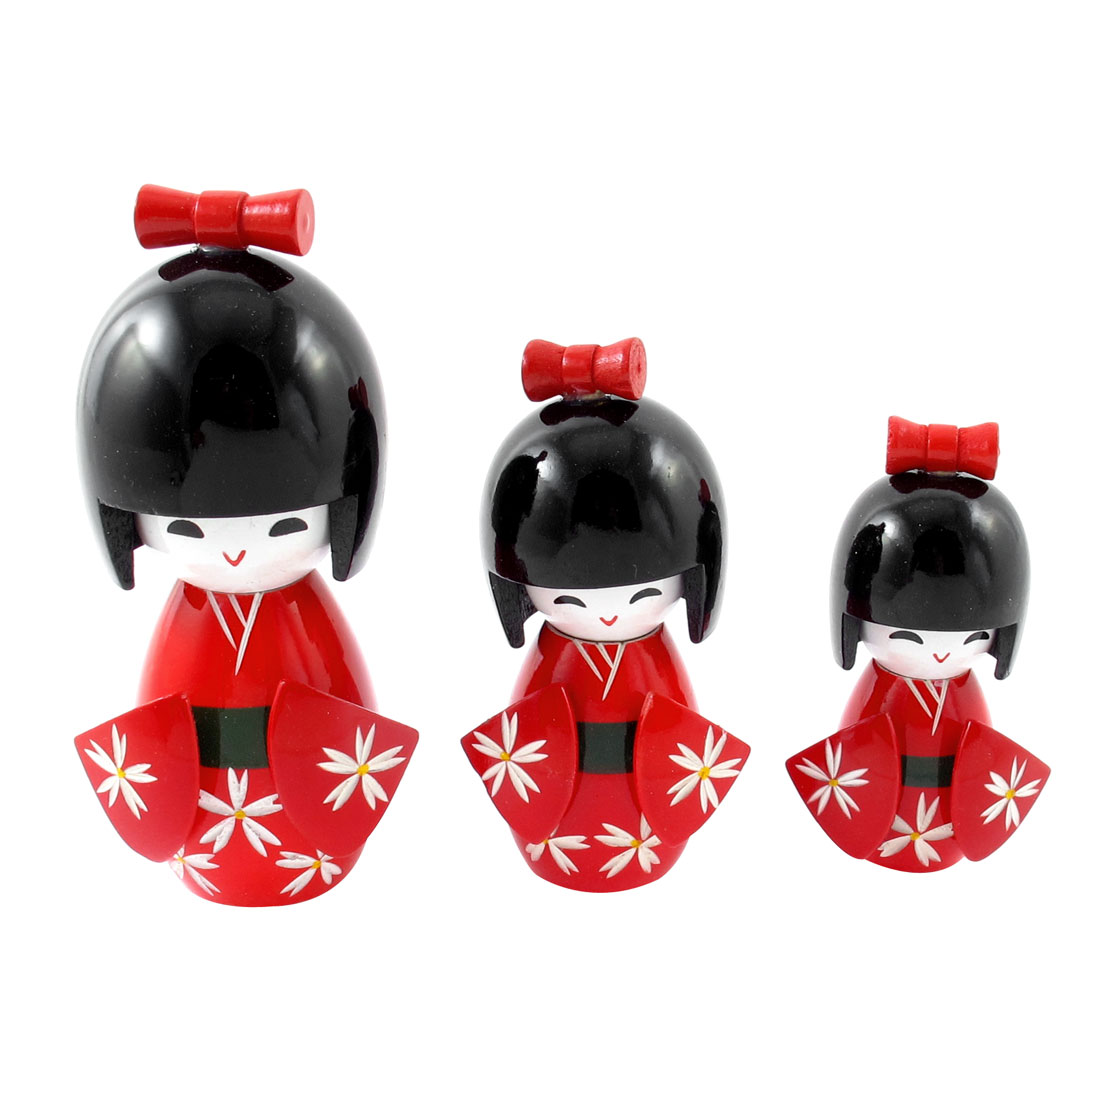 Unique Bargains 3Pcs Red Black Wooden Japanese Doll Desk Desktop Decoration